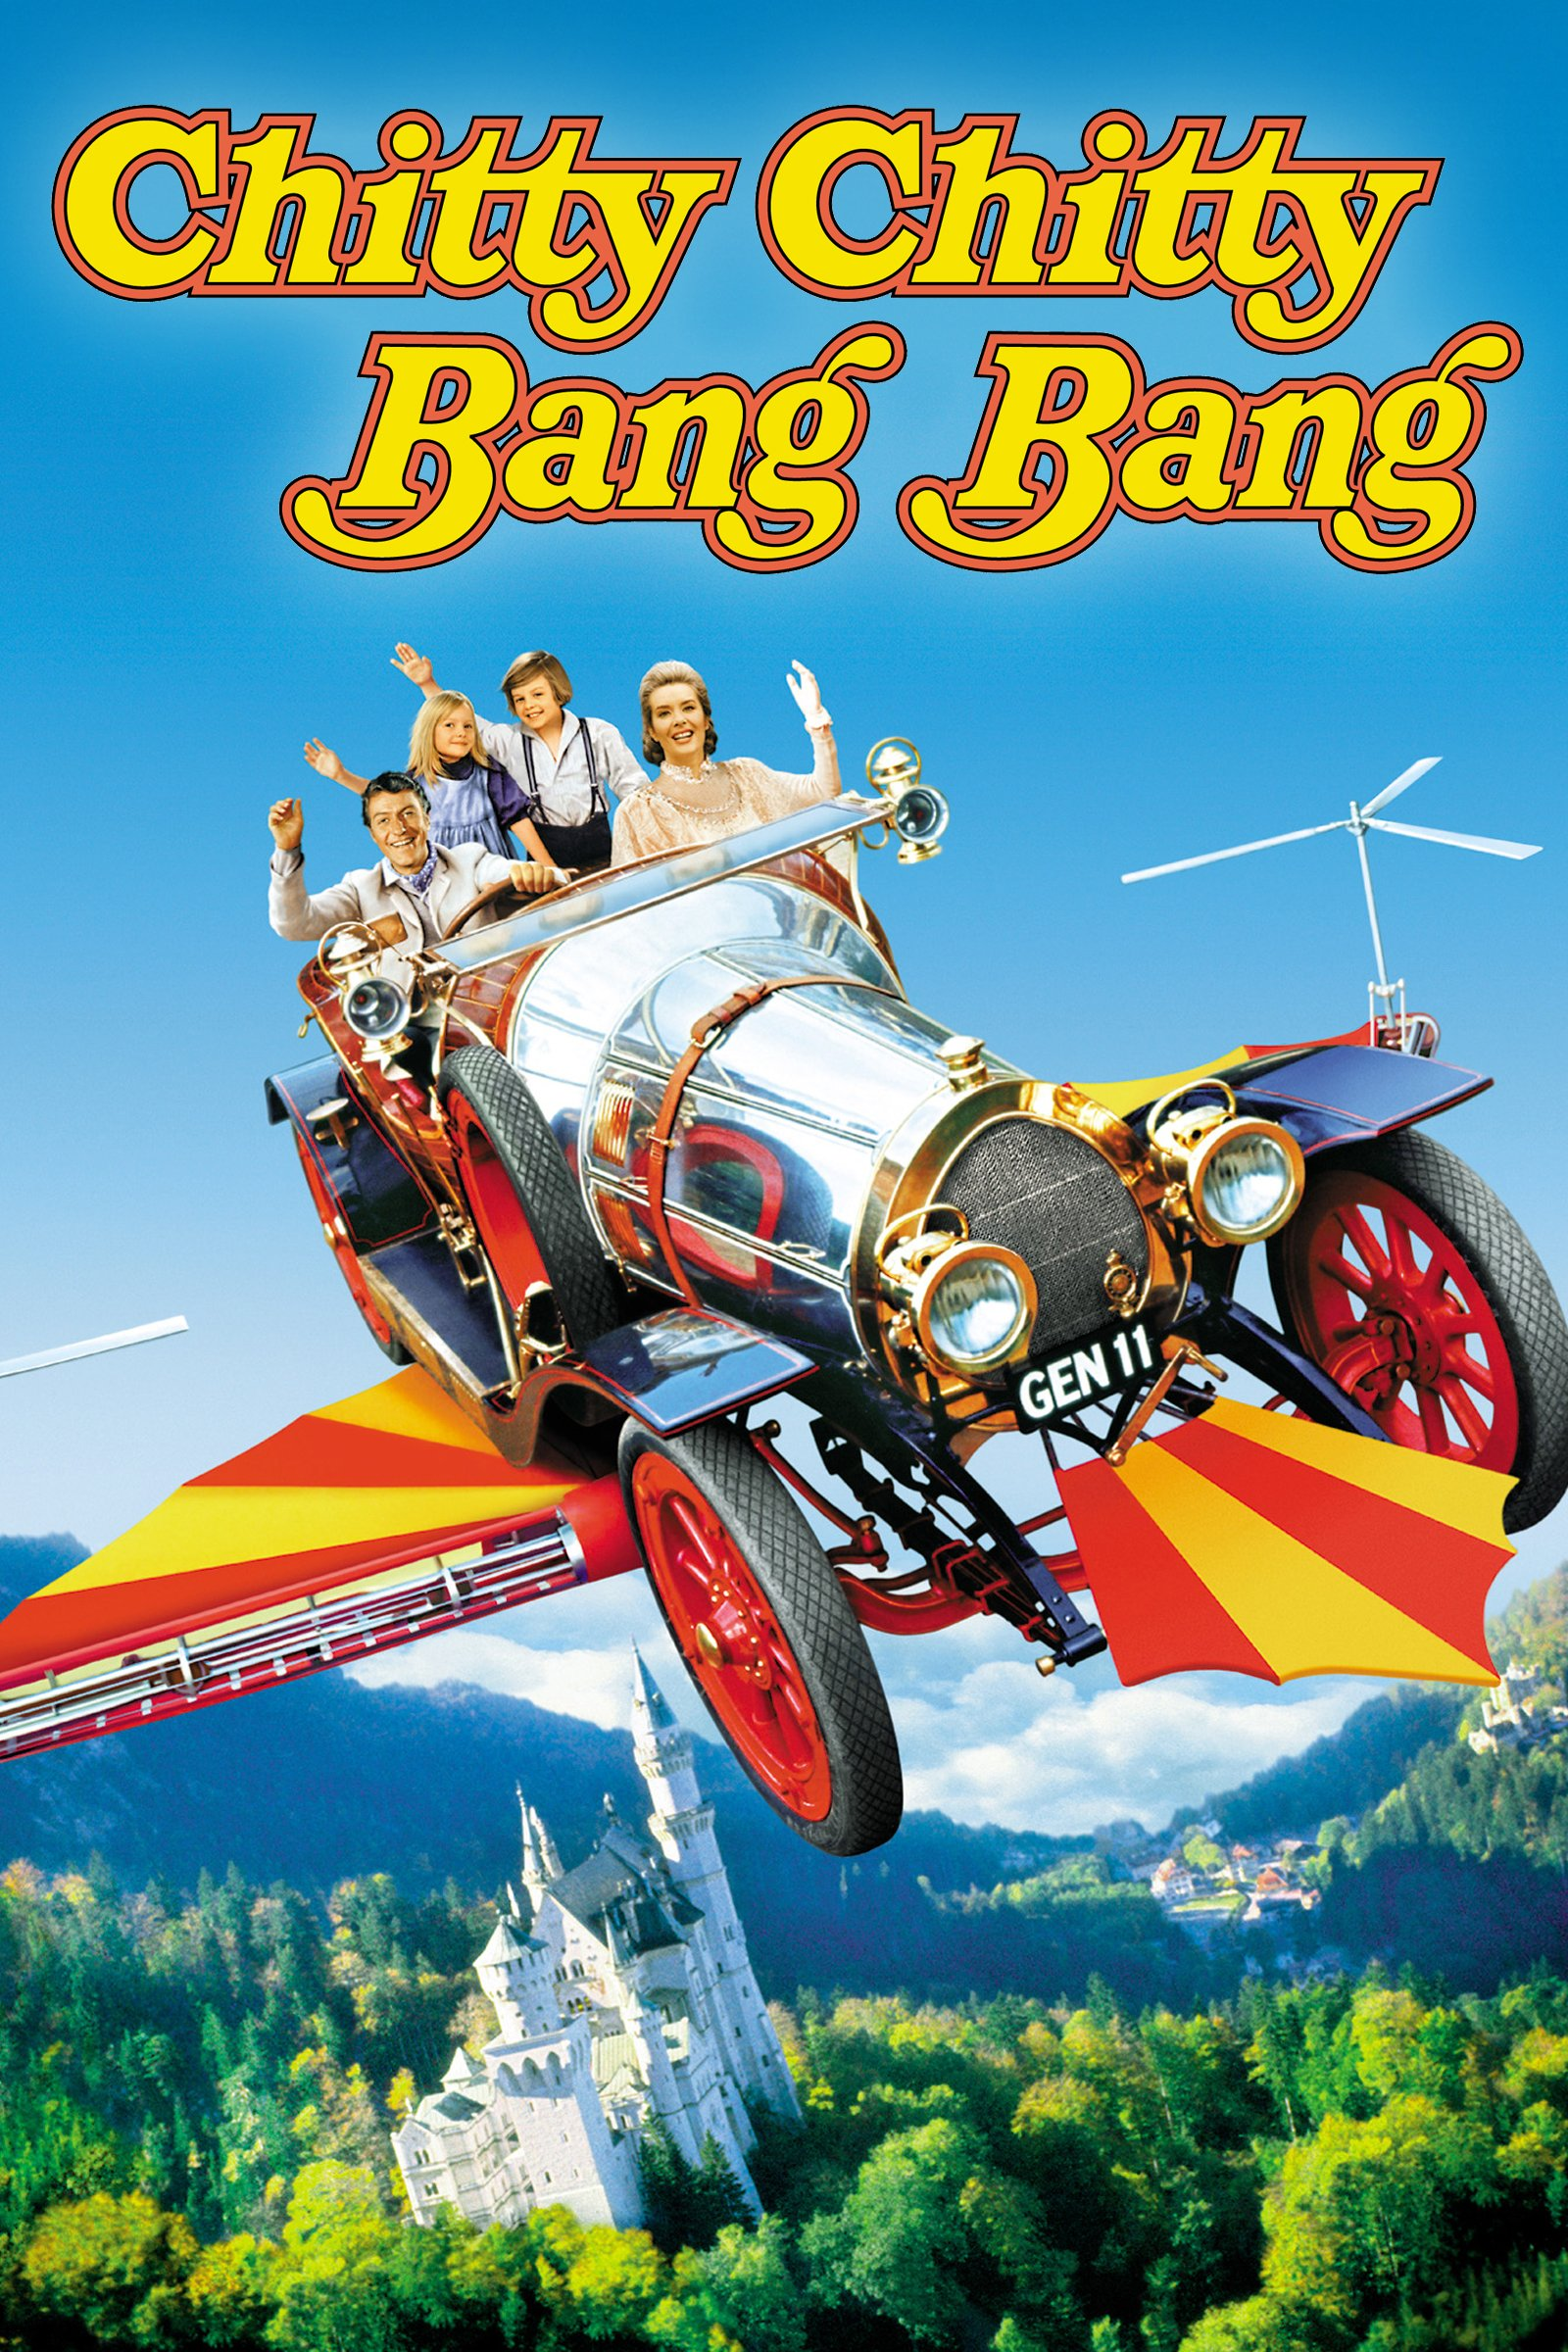 Chitty Chitty Bang Bang movie cover